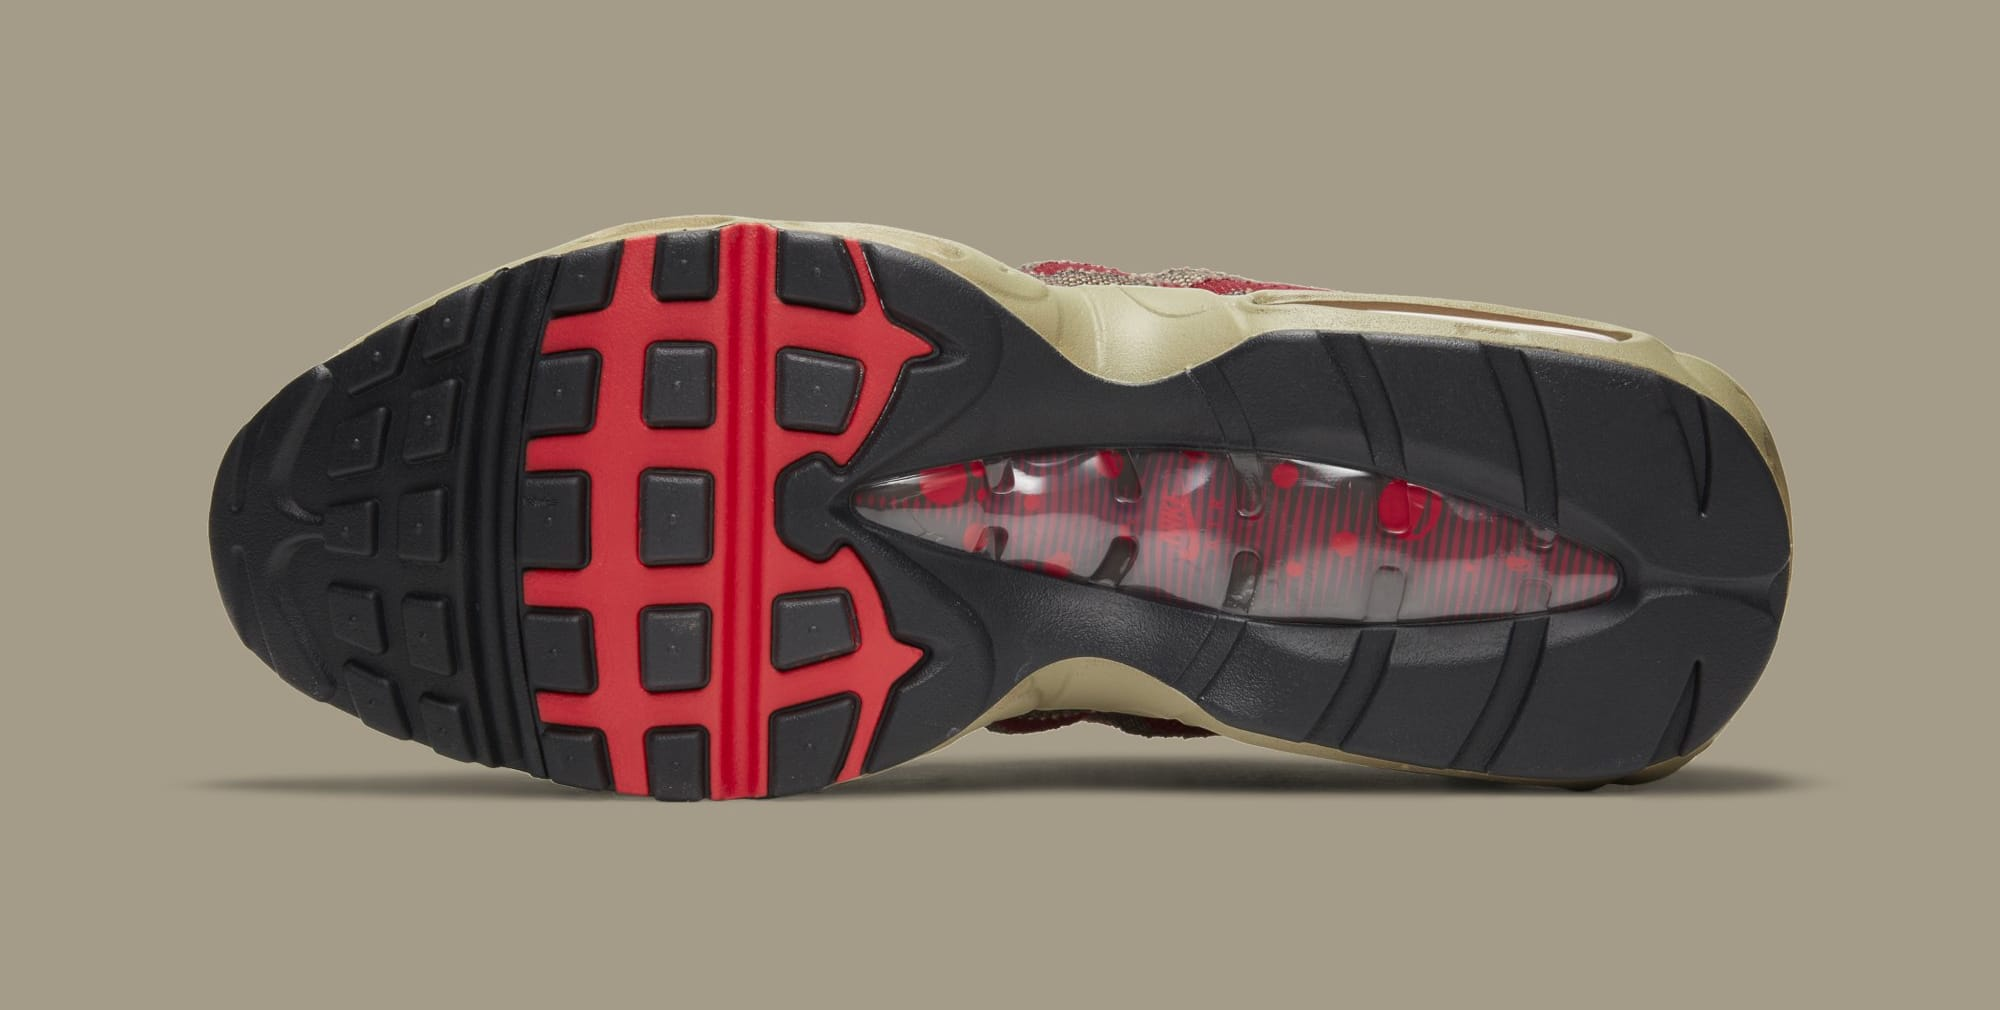 Nike Air Max 95 'Halloween' DC9215-200 Outsole